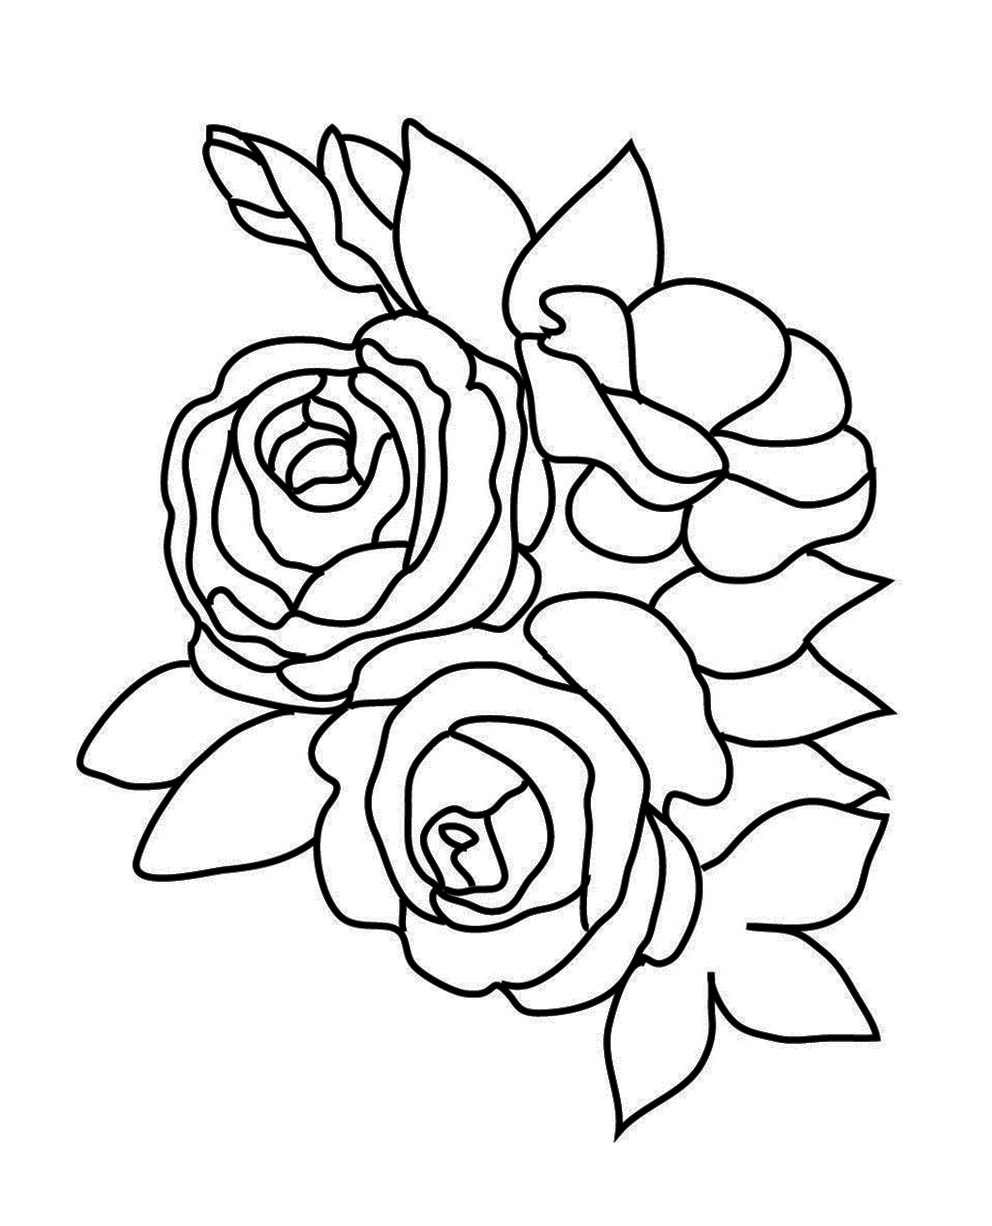 Coloring sheets roses - Rose Sketch To Color Rose Sketch Three Roses